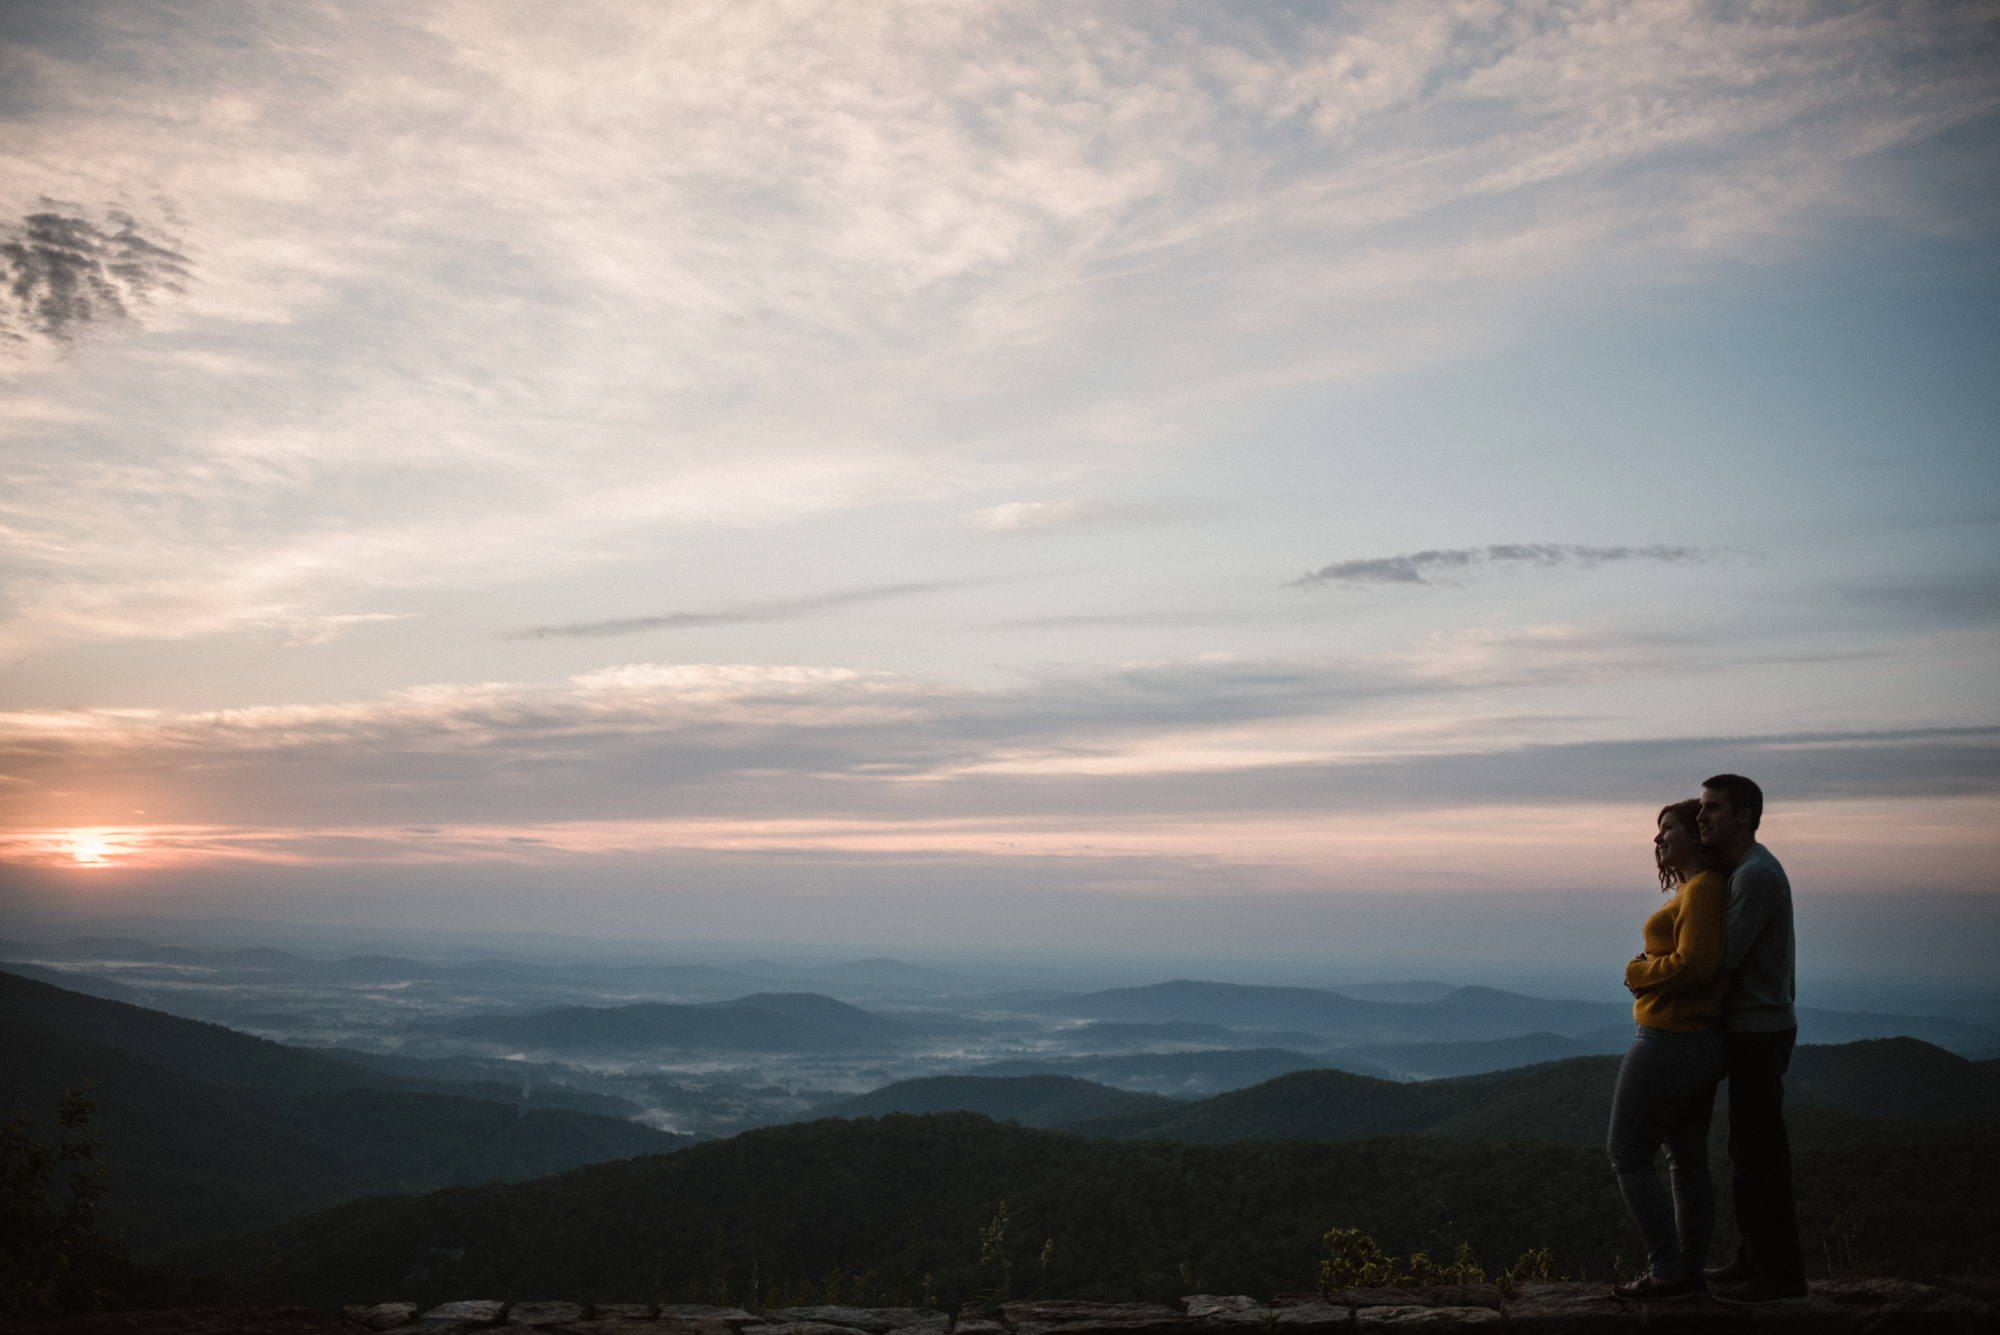 Sloane and Evan Sunrise Engagement Session in Shenandoah National Park - Things to Do in Luray Virginia - Adventurous Couple Photo Shoot White Sails Creative.jpg